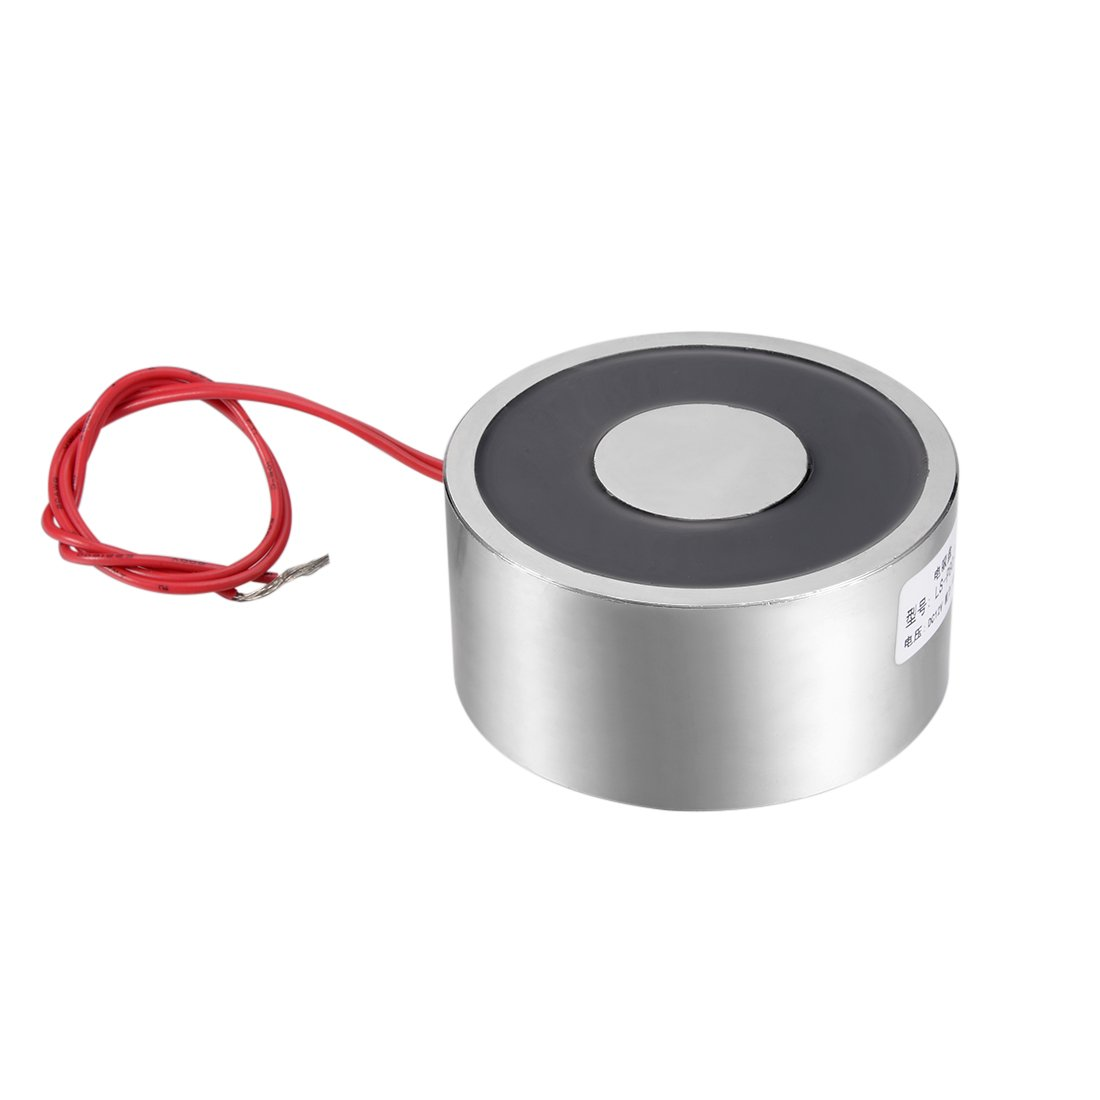 uxcell 80mm x 38mm Size DC12V 1000N Sucking Disc Solenoid Lift Holding Electromagnet